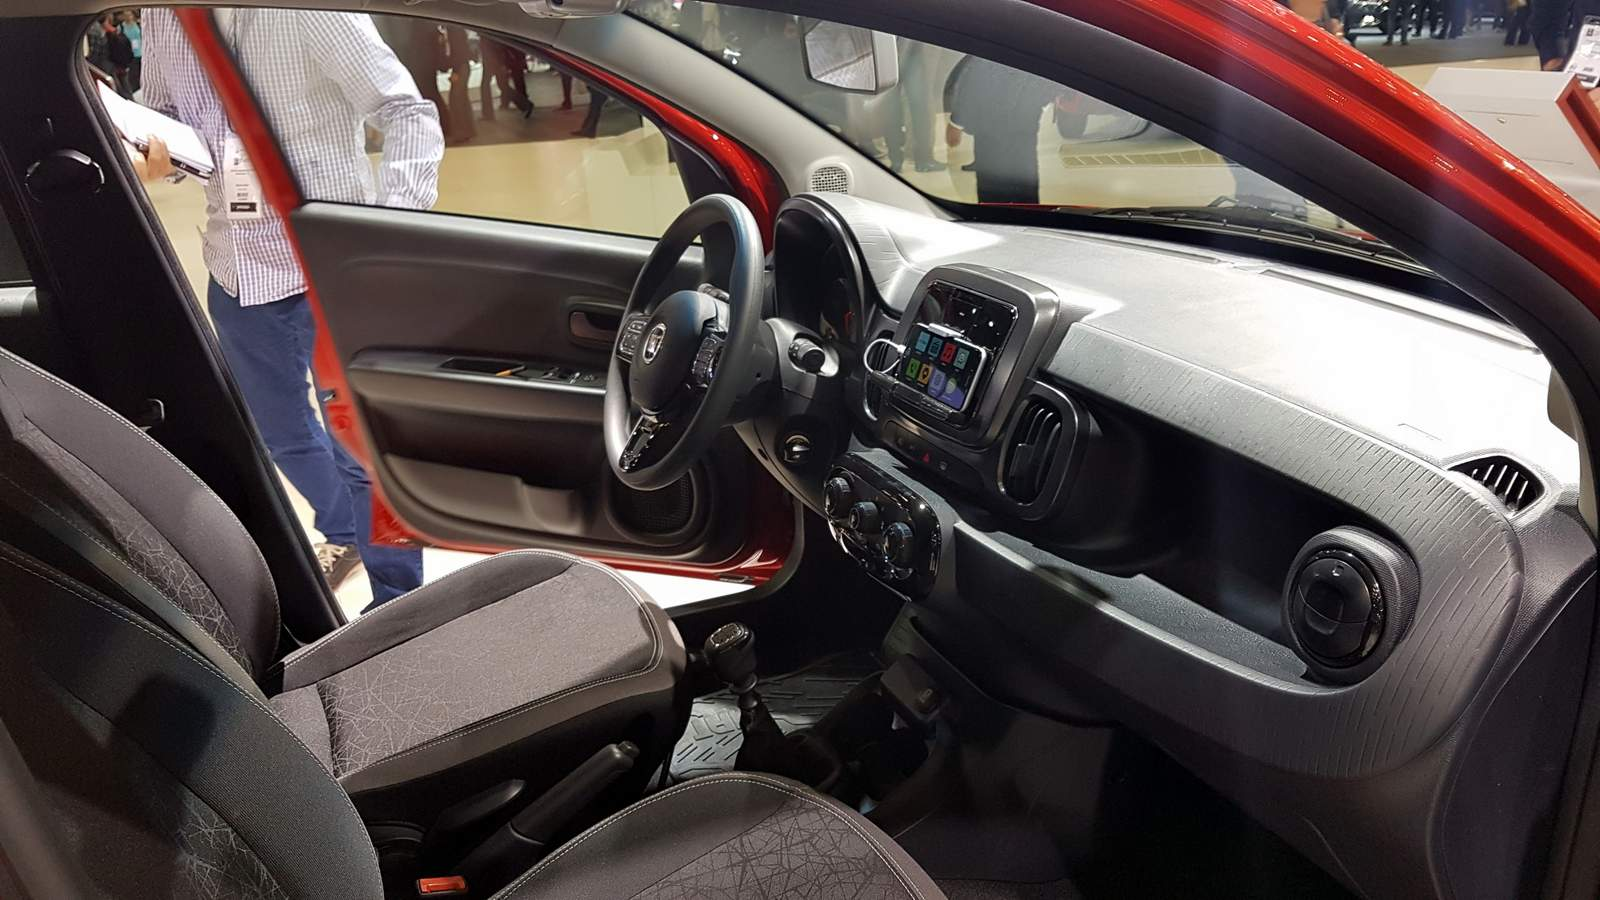 Fiat mobi drive com motor 1 0 tr s cilindros firefly for B b interno 8